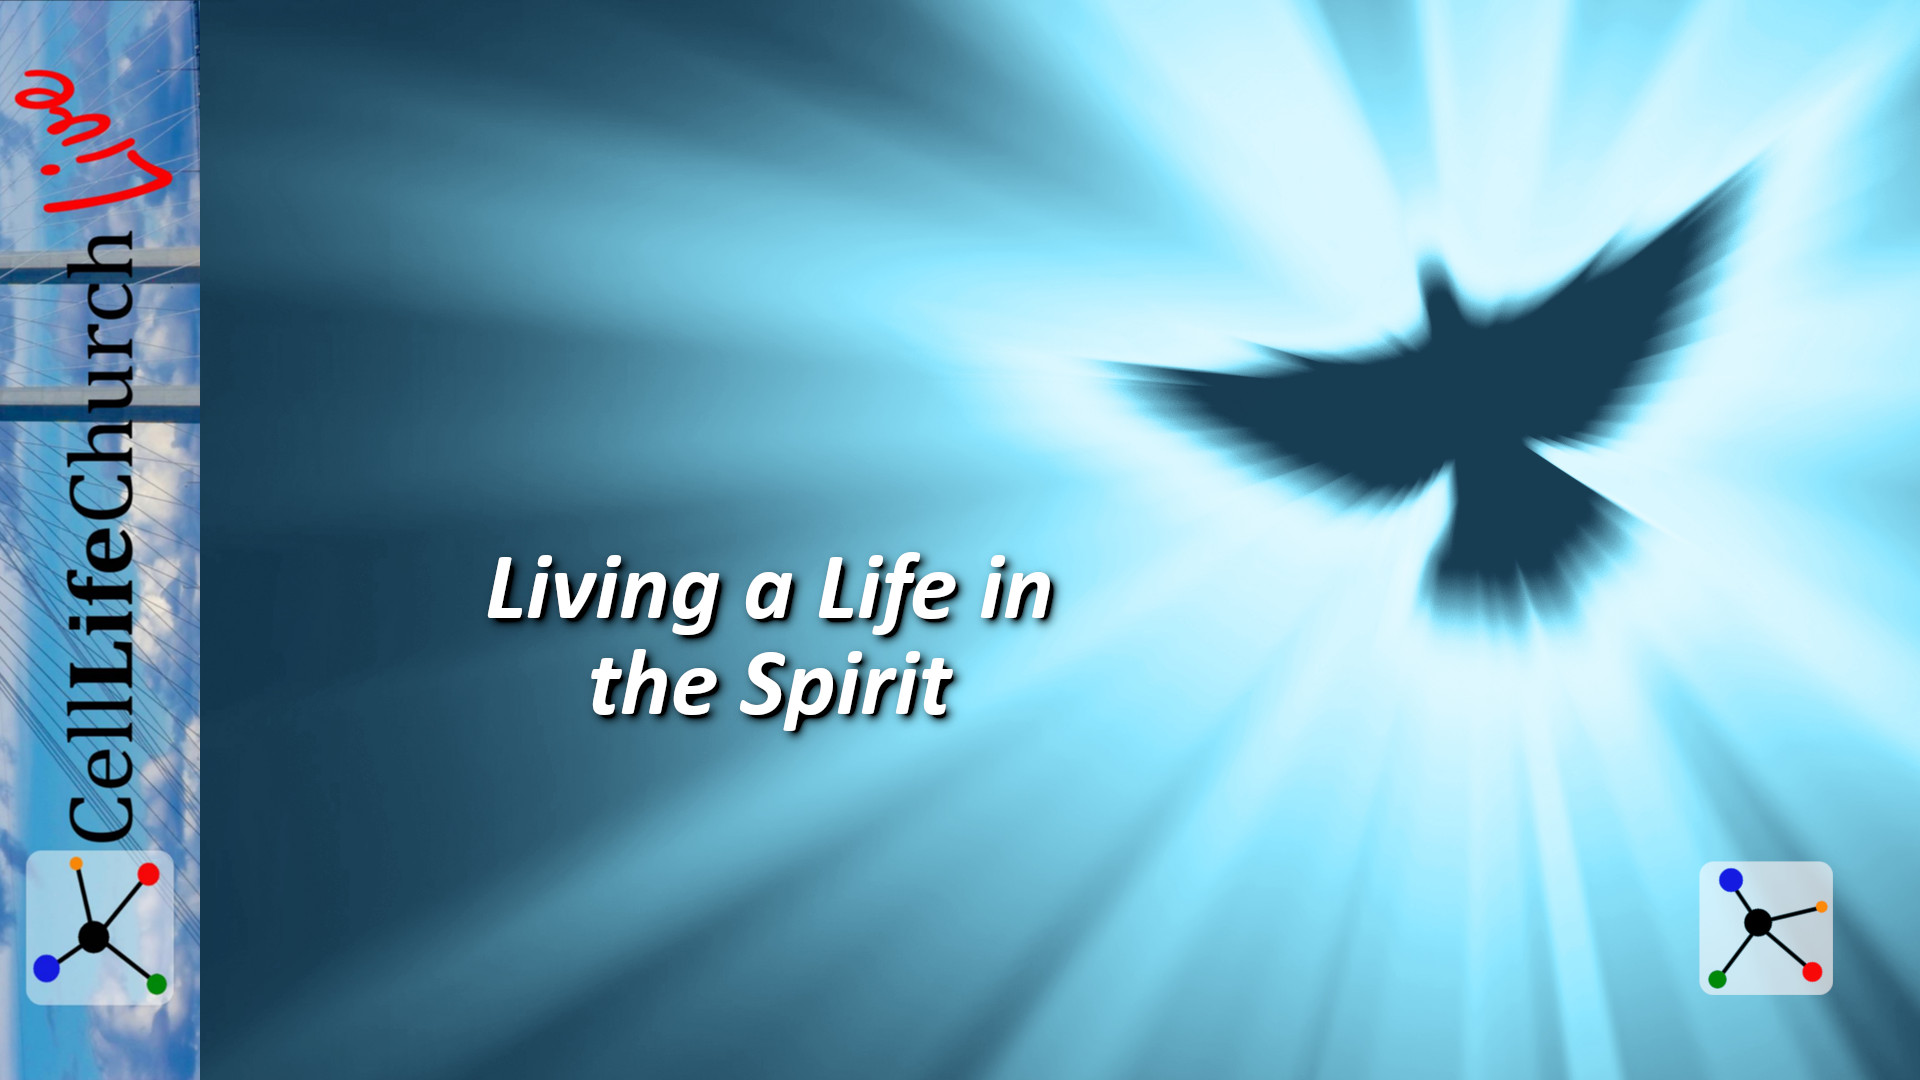 Living a Life in the Spirit